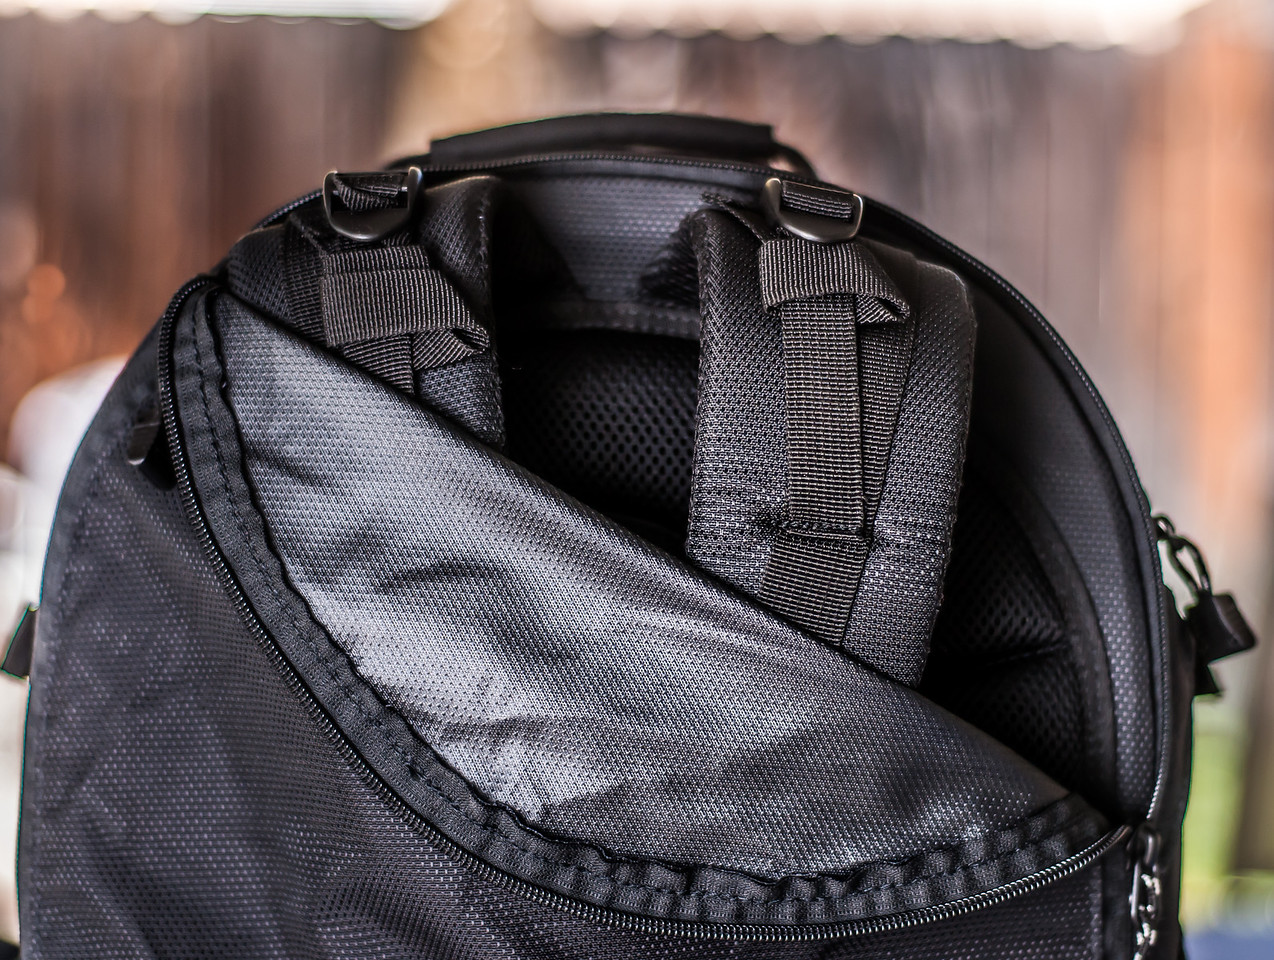 "<br><br><a href=""http://www.tenba.com/Products/Shootout-Backpack-Medium-Black.aspx"" target=""_blank"">Tenba Shootout Backpack, Medium Black  <p>Detailed view of panel to conceal straps.</p></a>"